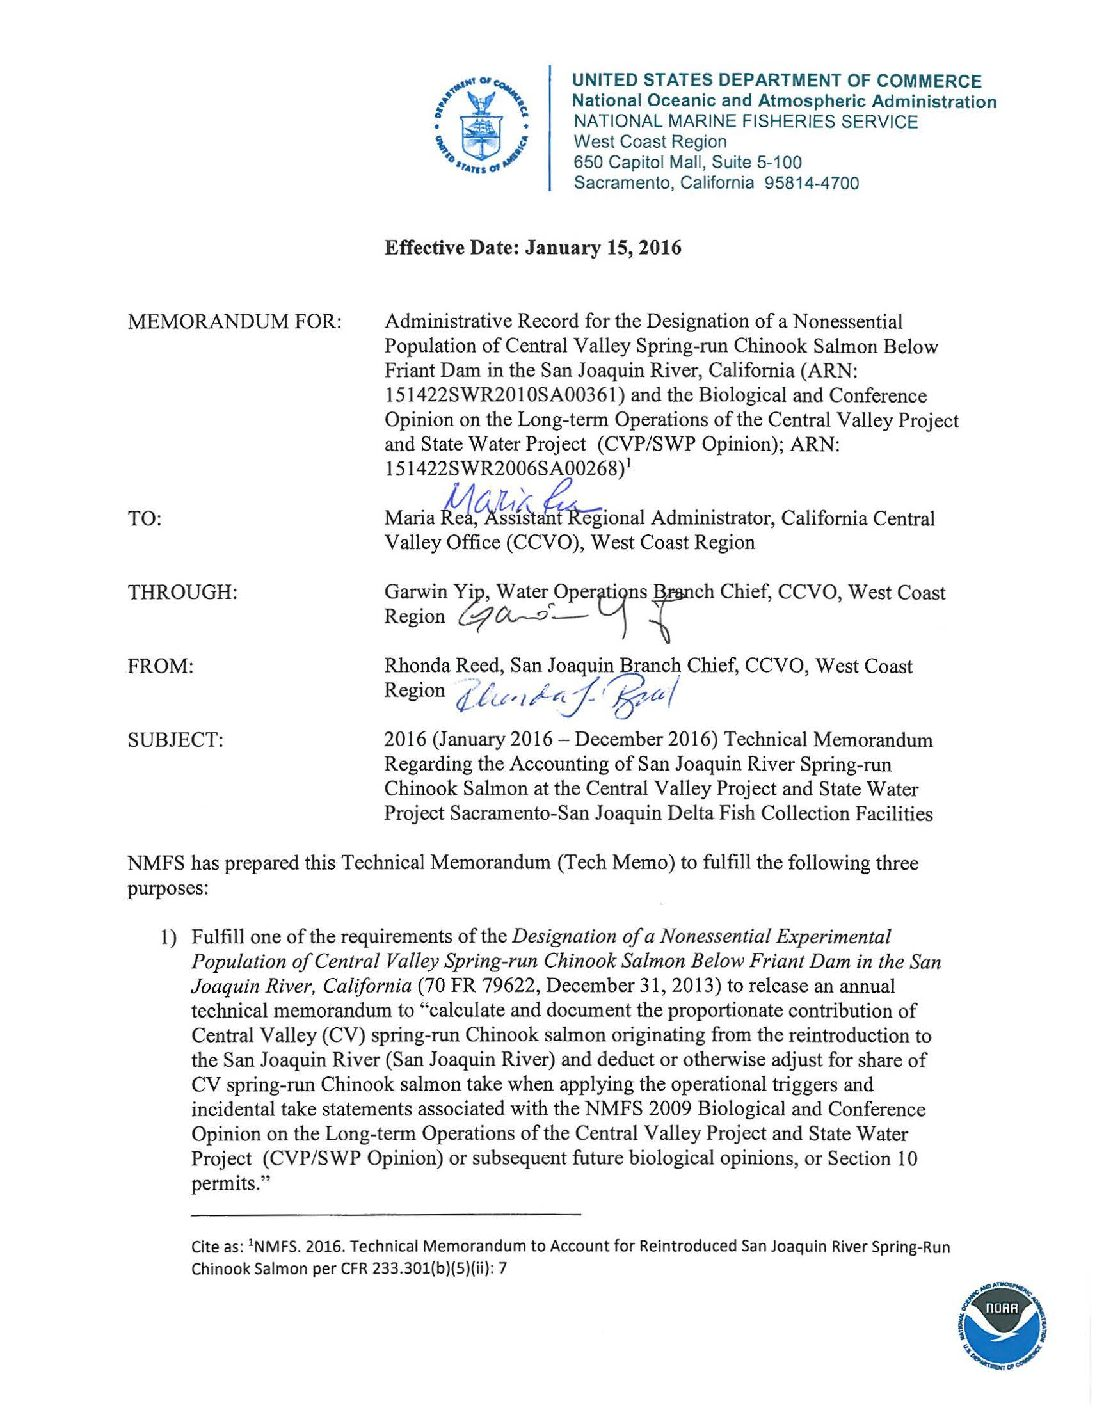 2016 Technical Memorandum Regarding the Accounting of San Joaquin River Spring-run Chinook Salmon at the Central Valley Project and State Water Project Sacramento-San Joaquin Delta Fish Collection Facilities